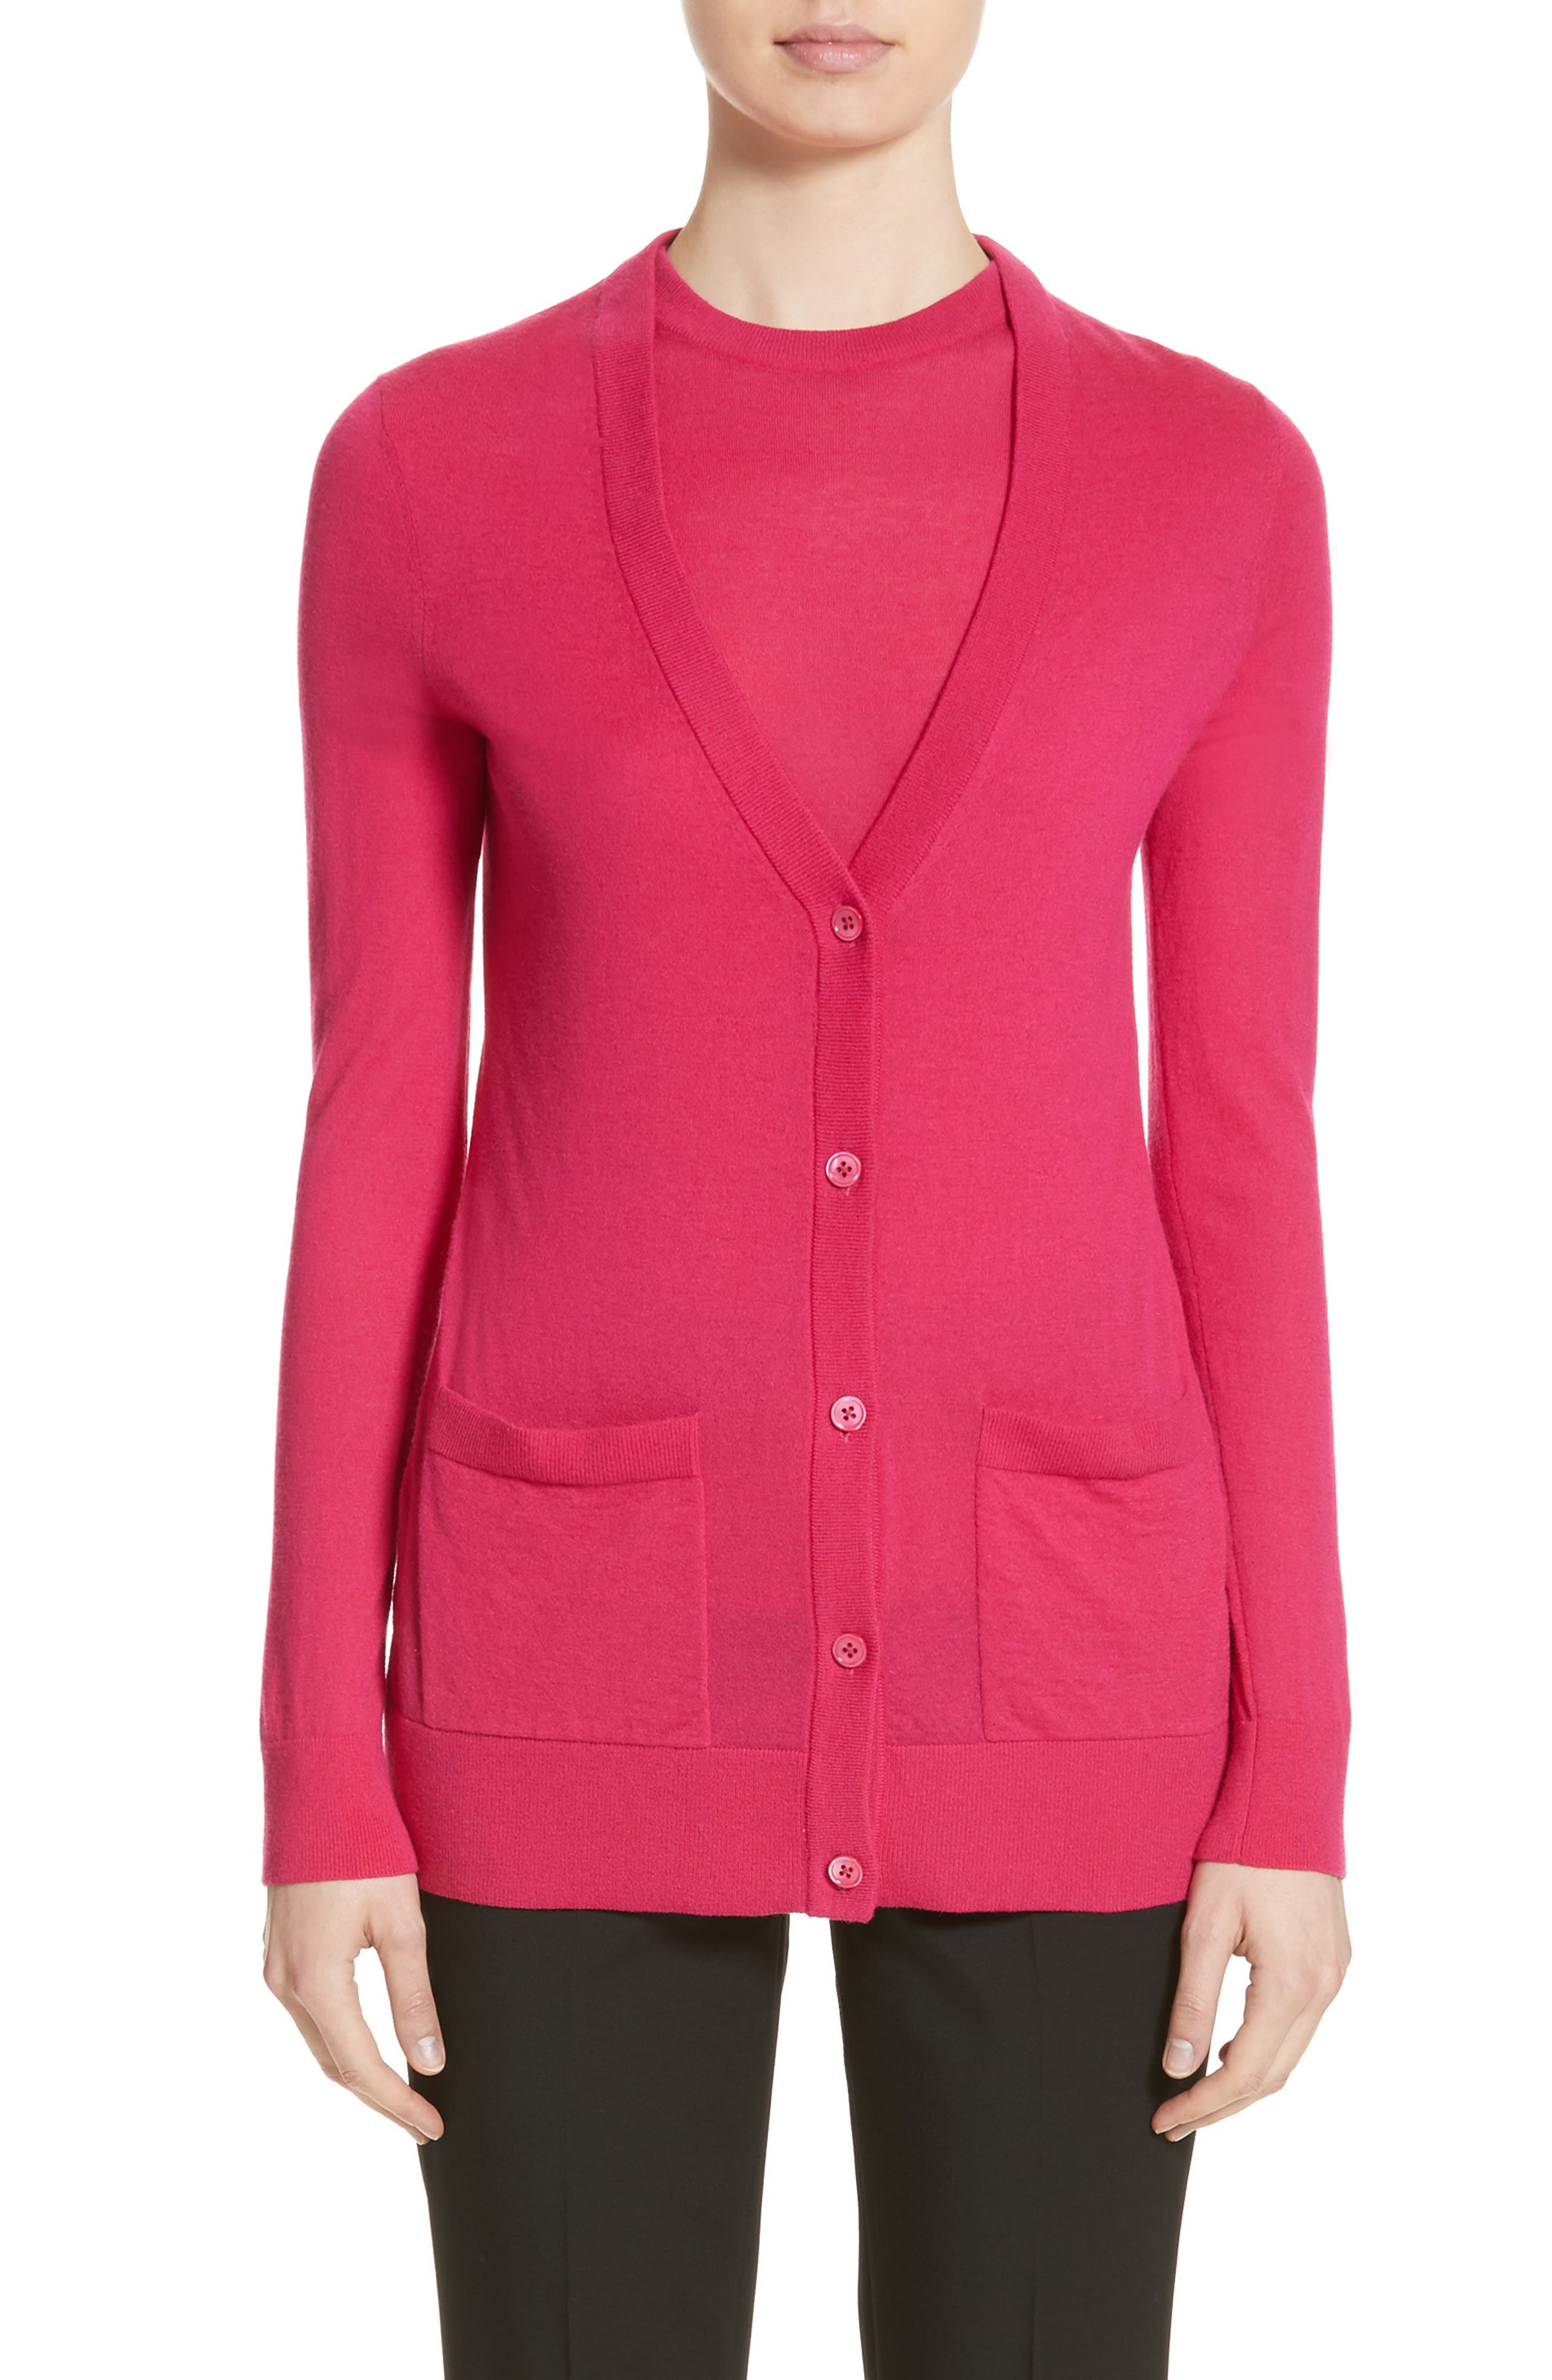 Michael Kors Featherweight Cashmere Cardigan